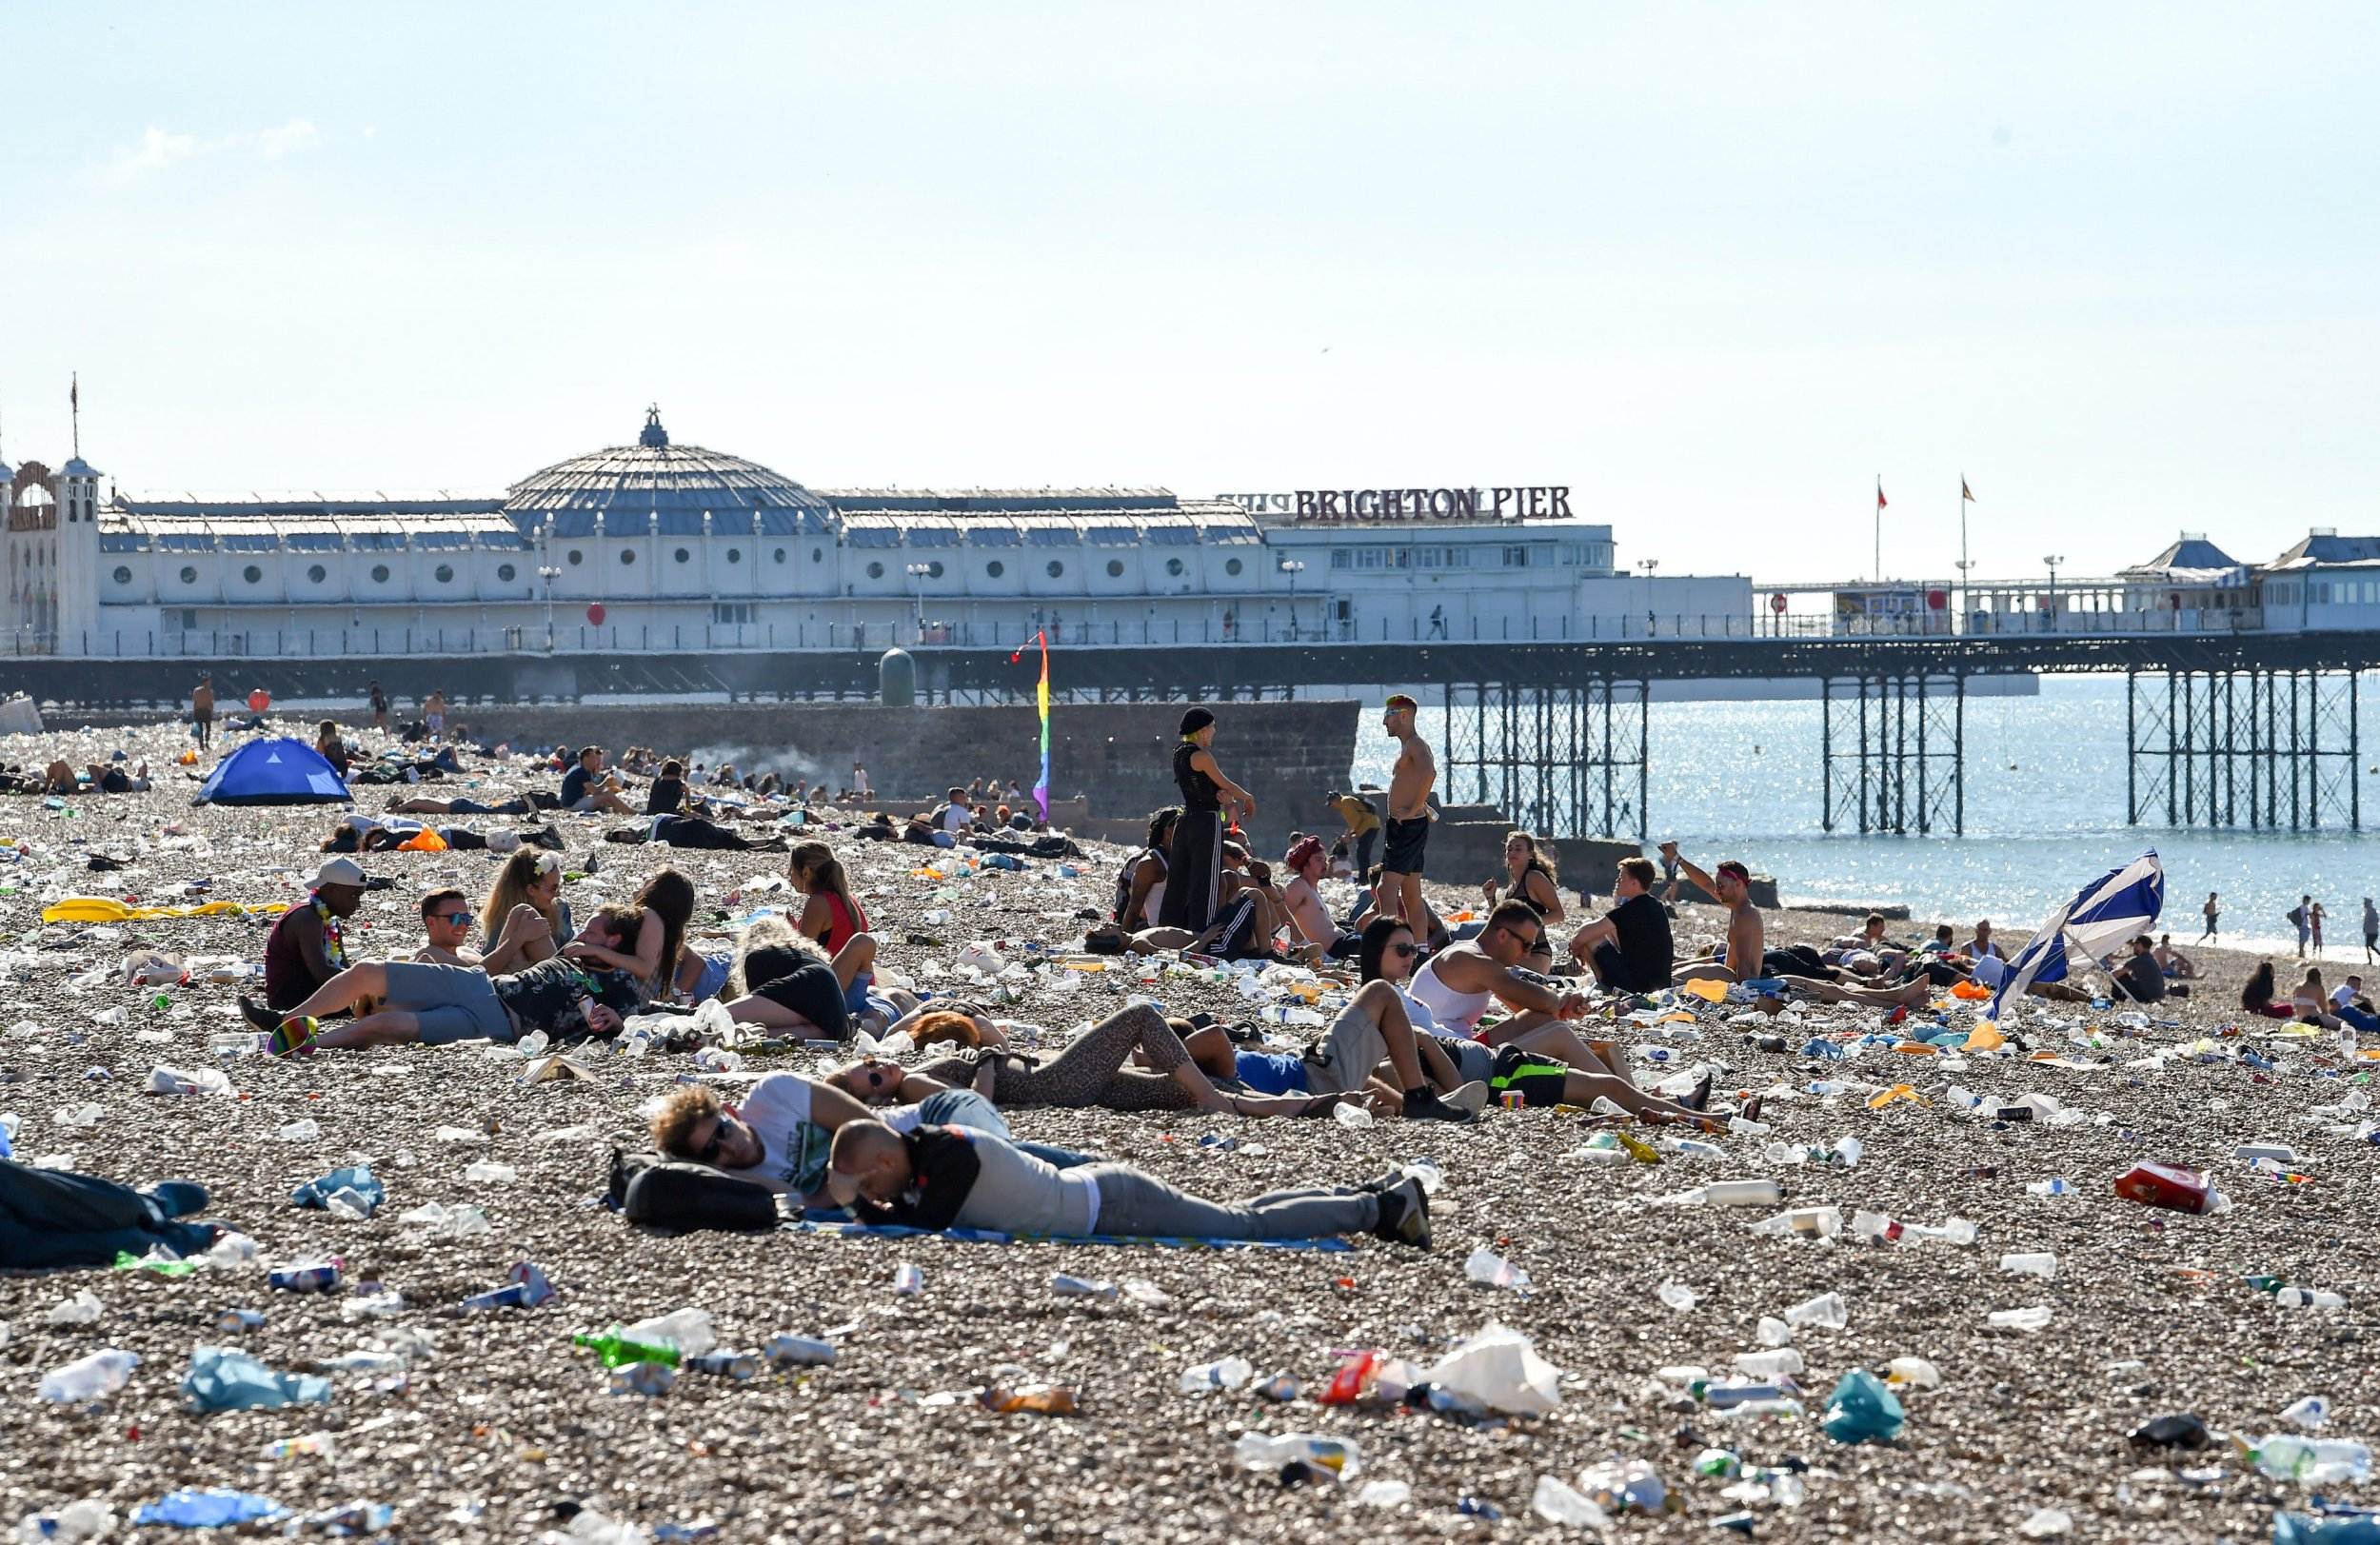 Morning after the night before as people wake up on Brighton beach after Pride